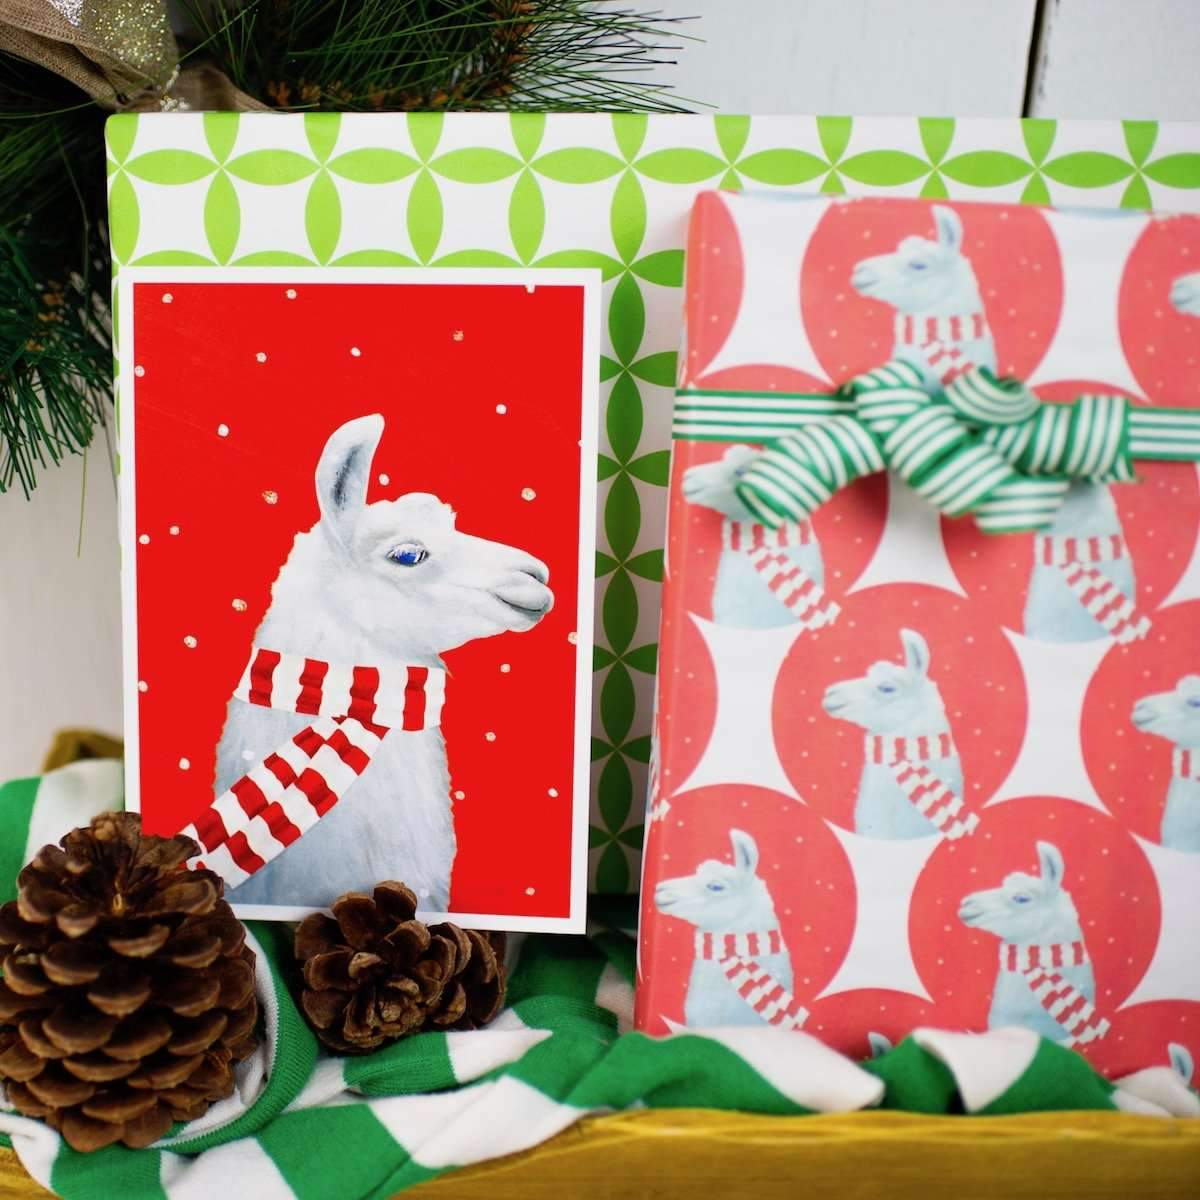 two packages wrapped in llama paper next to a pine cone and postcard of a llama